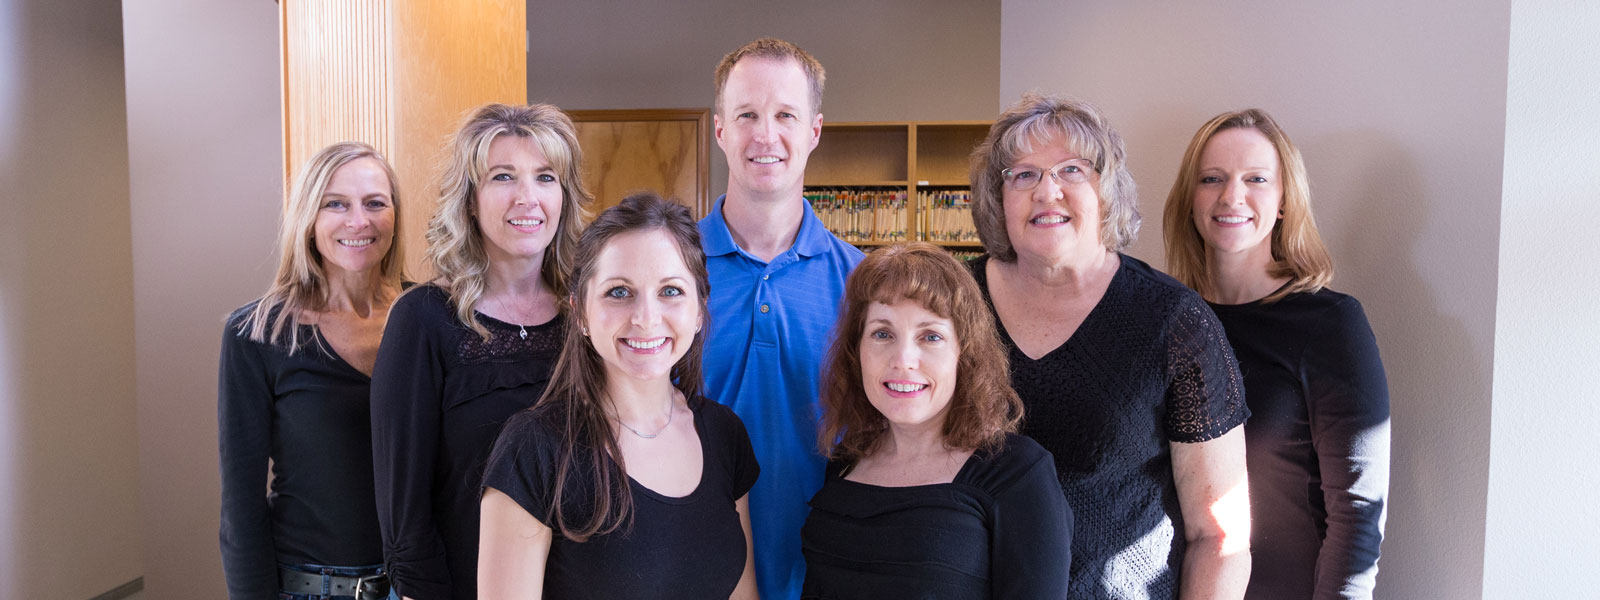 Spokane Dental: Meet The Team